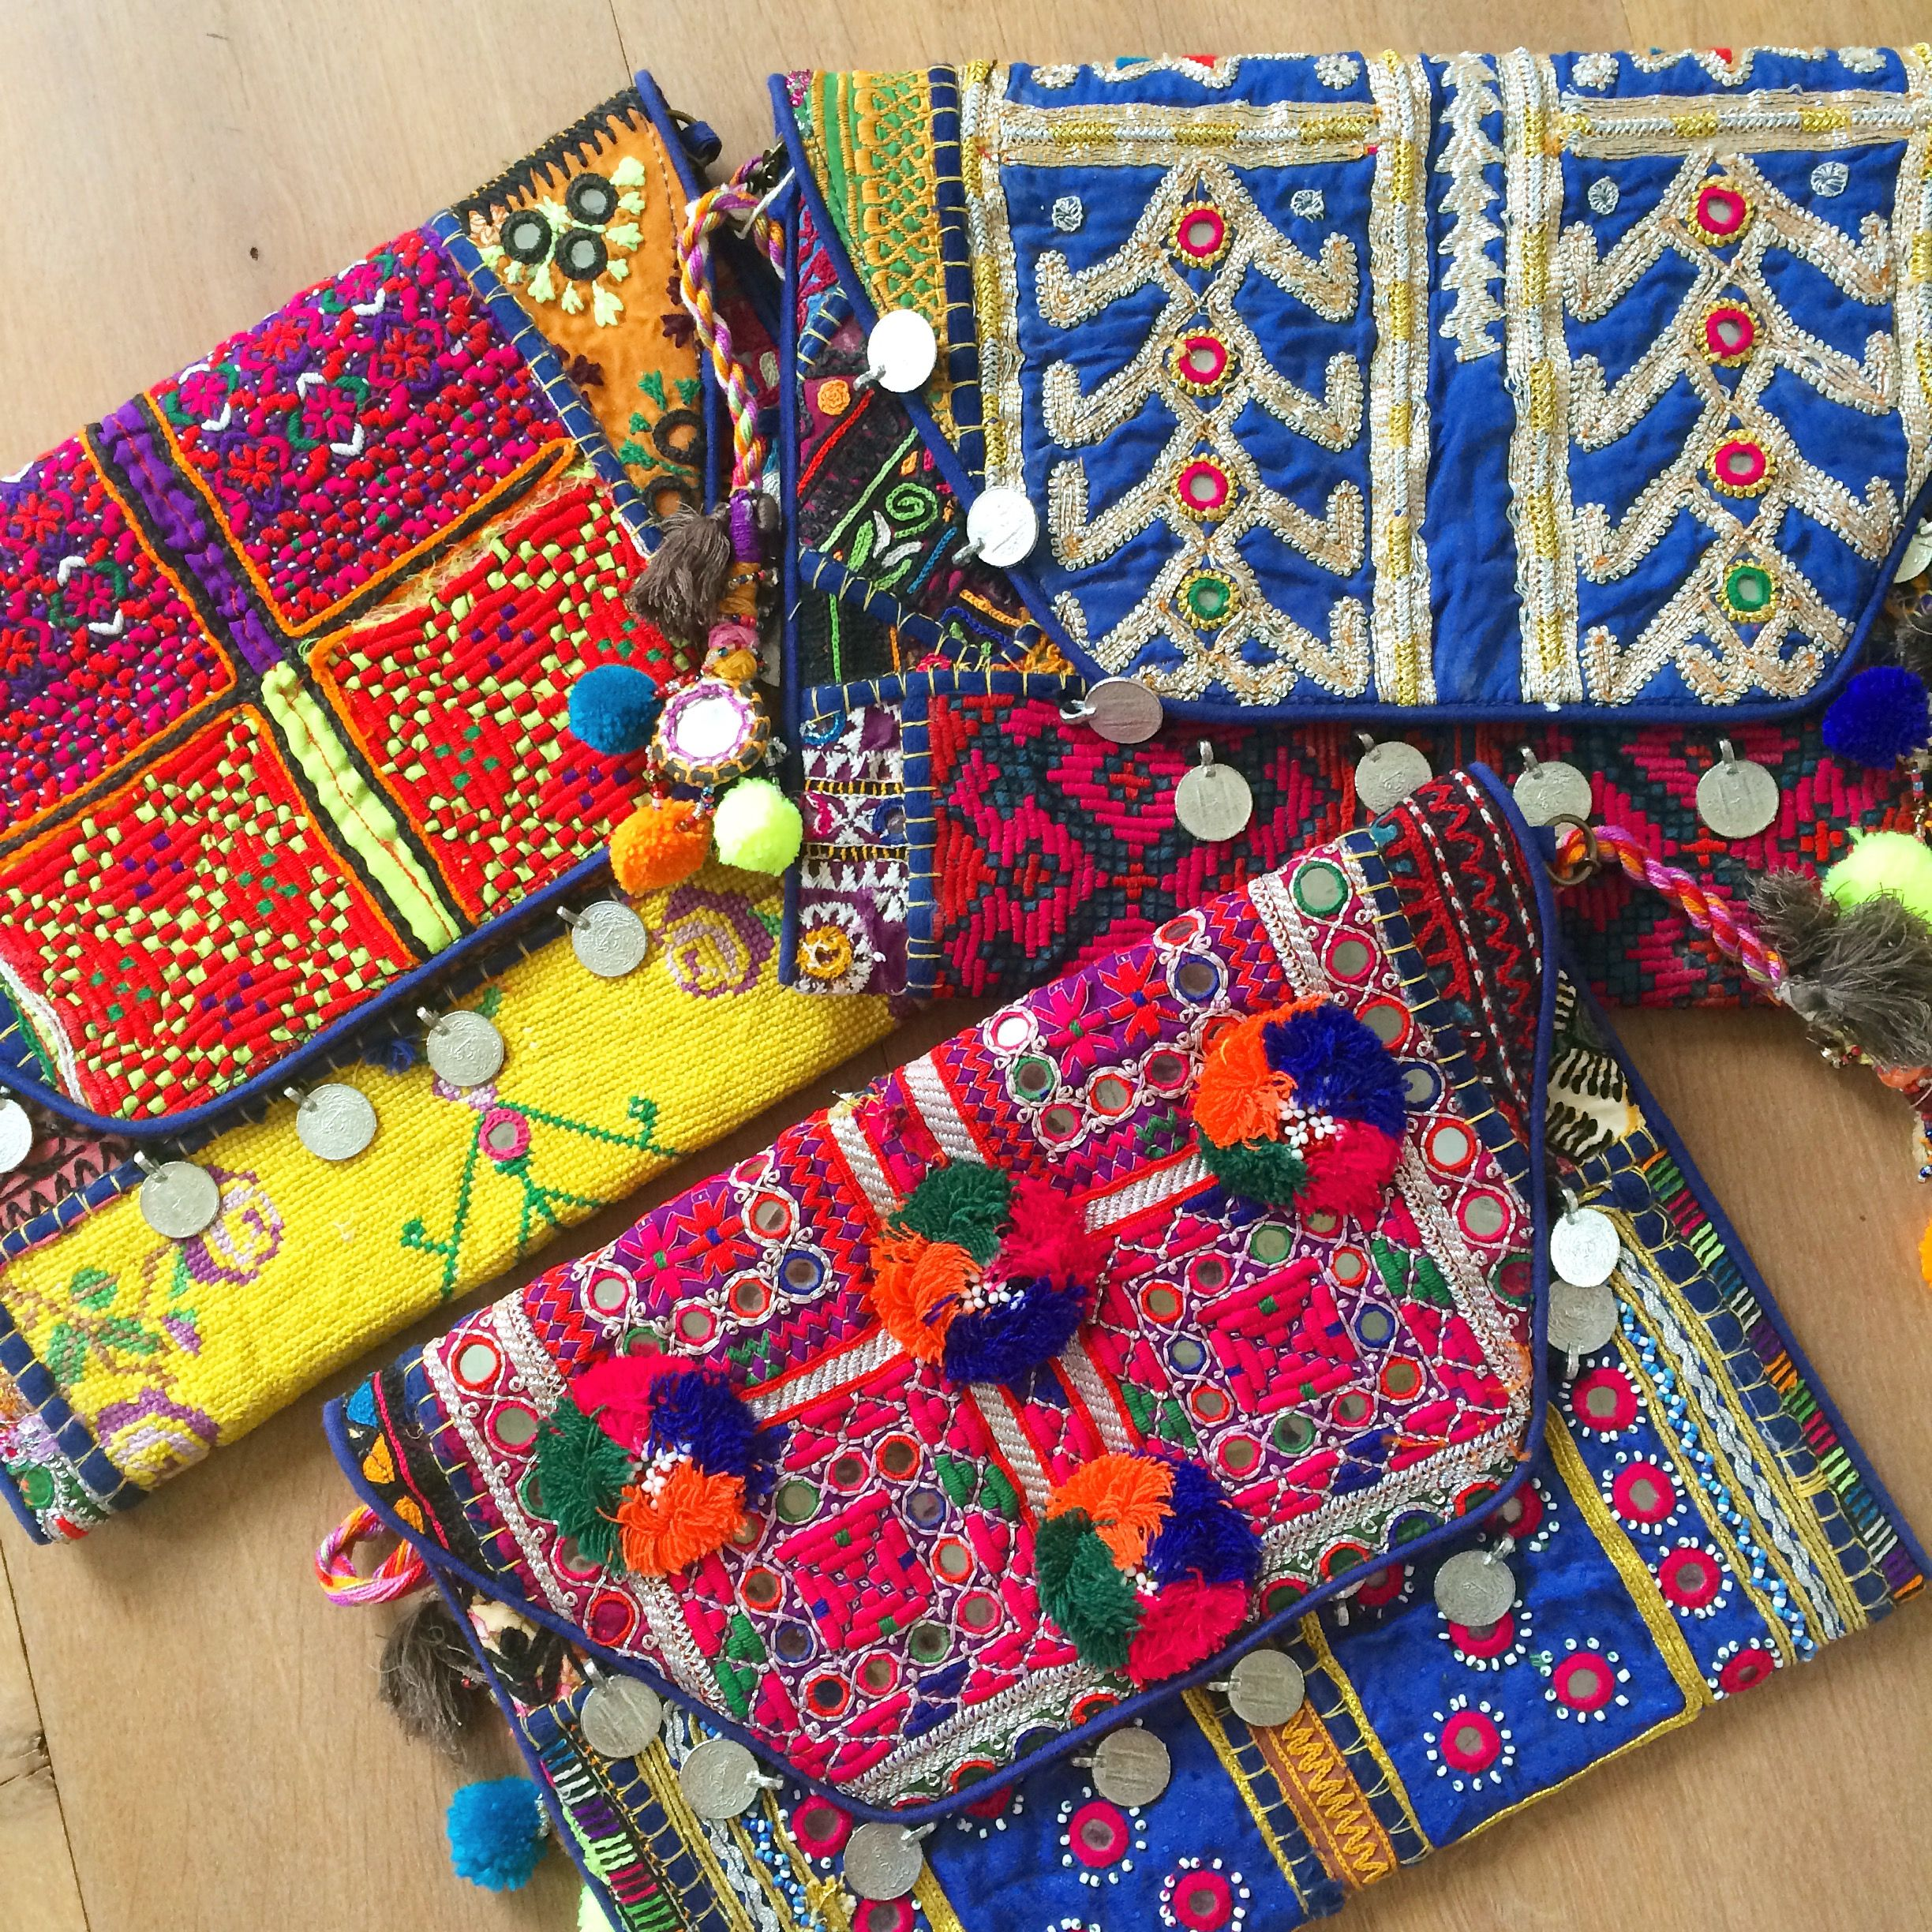 Bohemian clutches from Le Souk